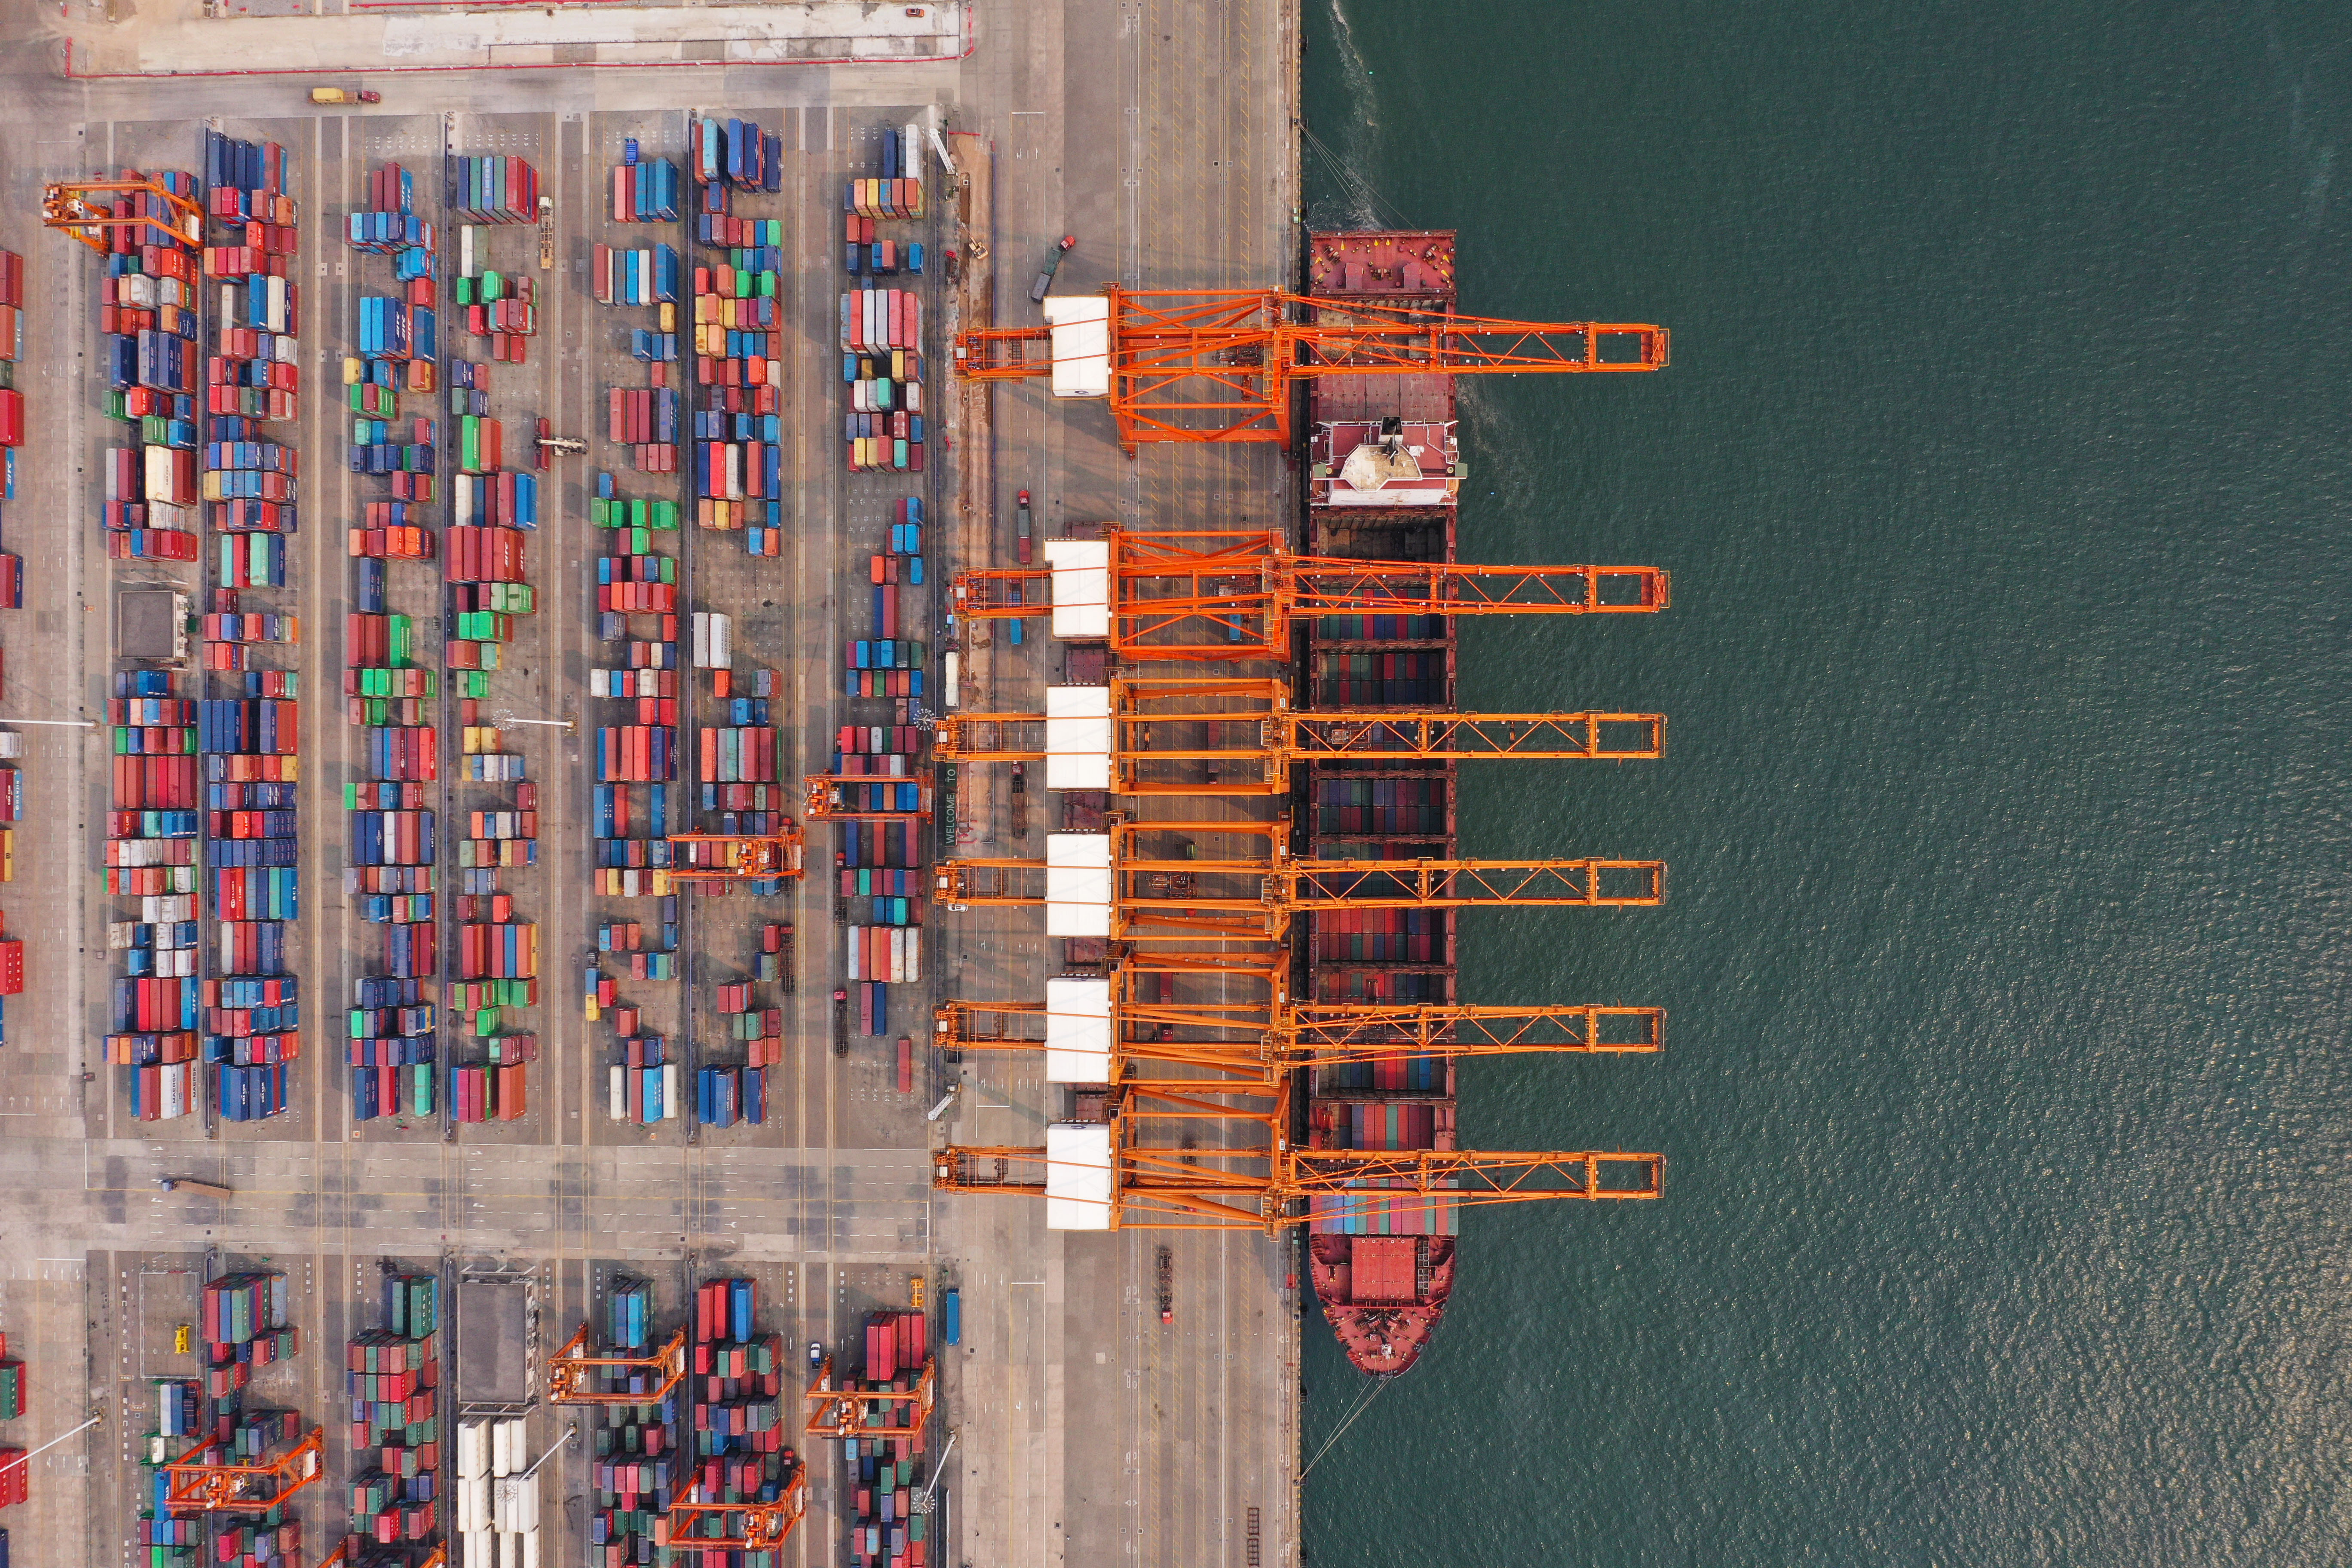 China's exports up 2.6 pct in August, imports down 2.6 pct - Xinhua   English.news.cn